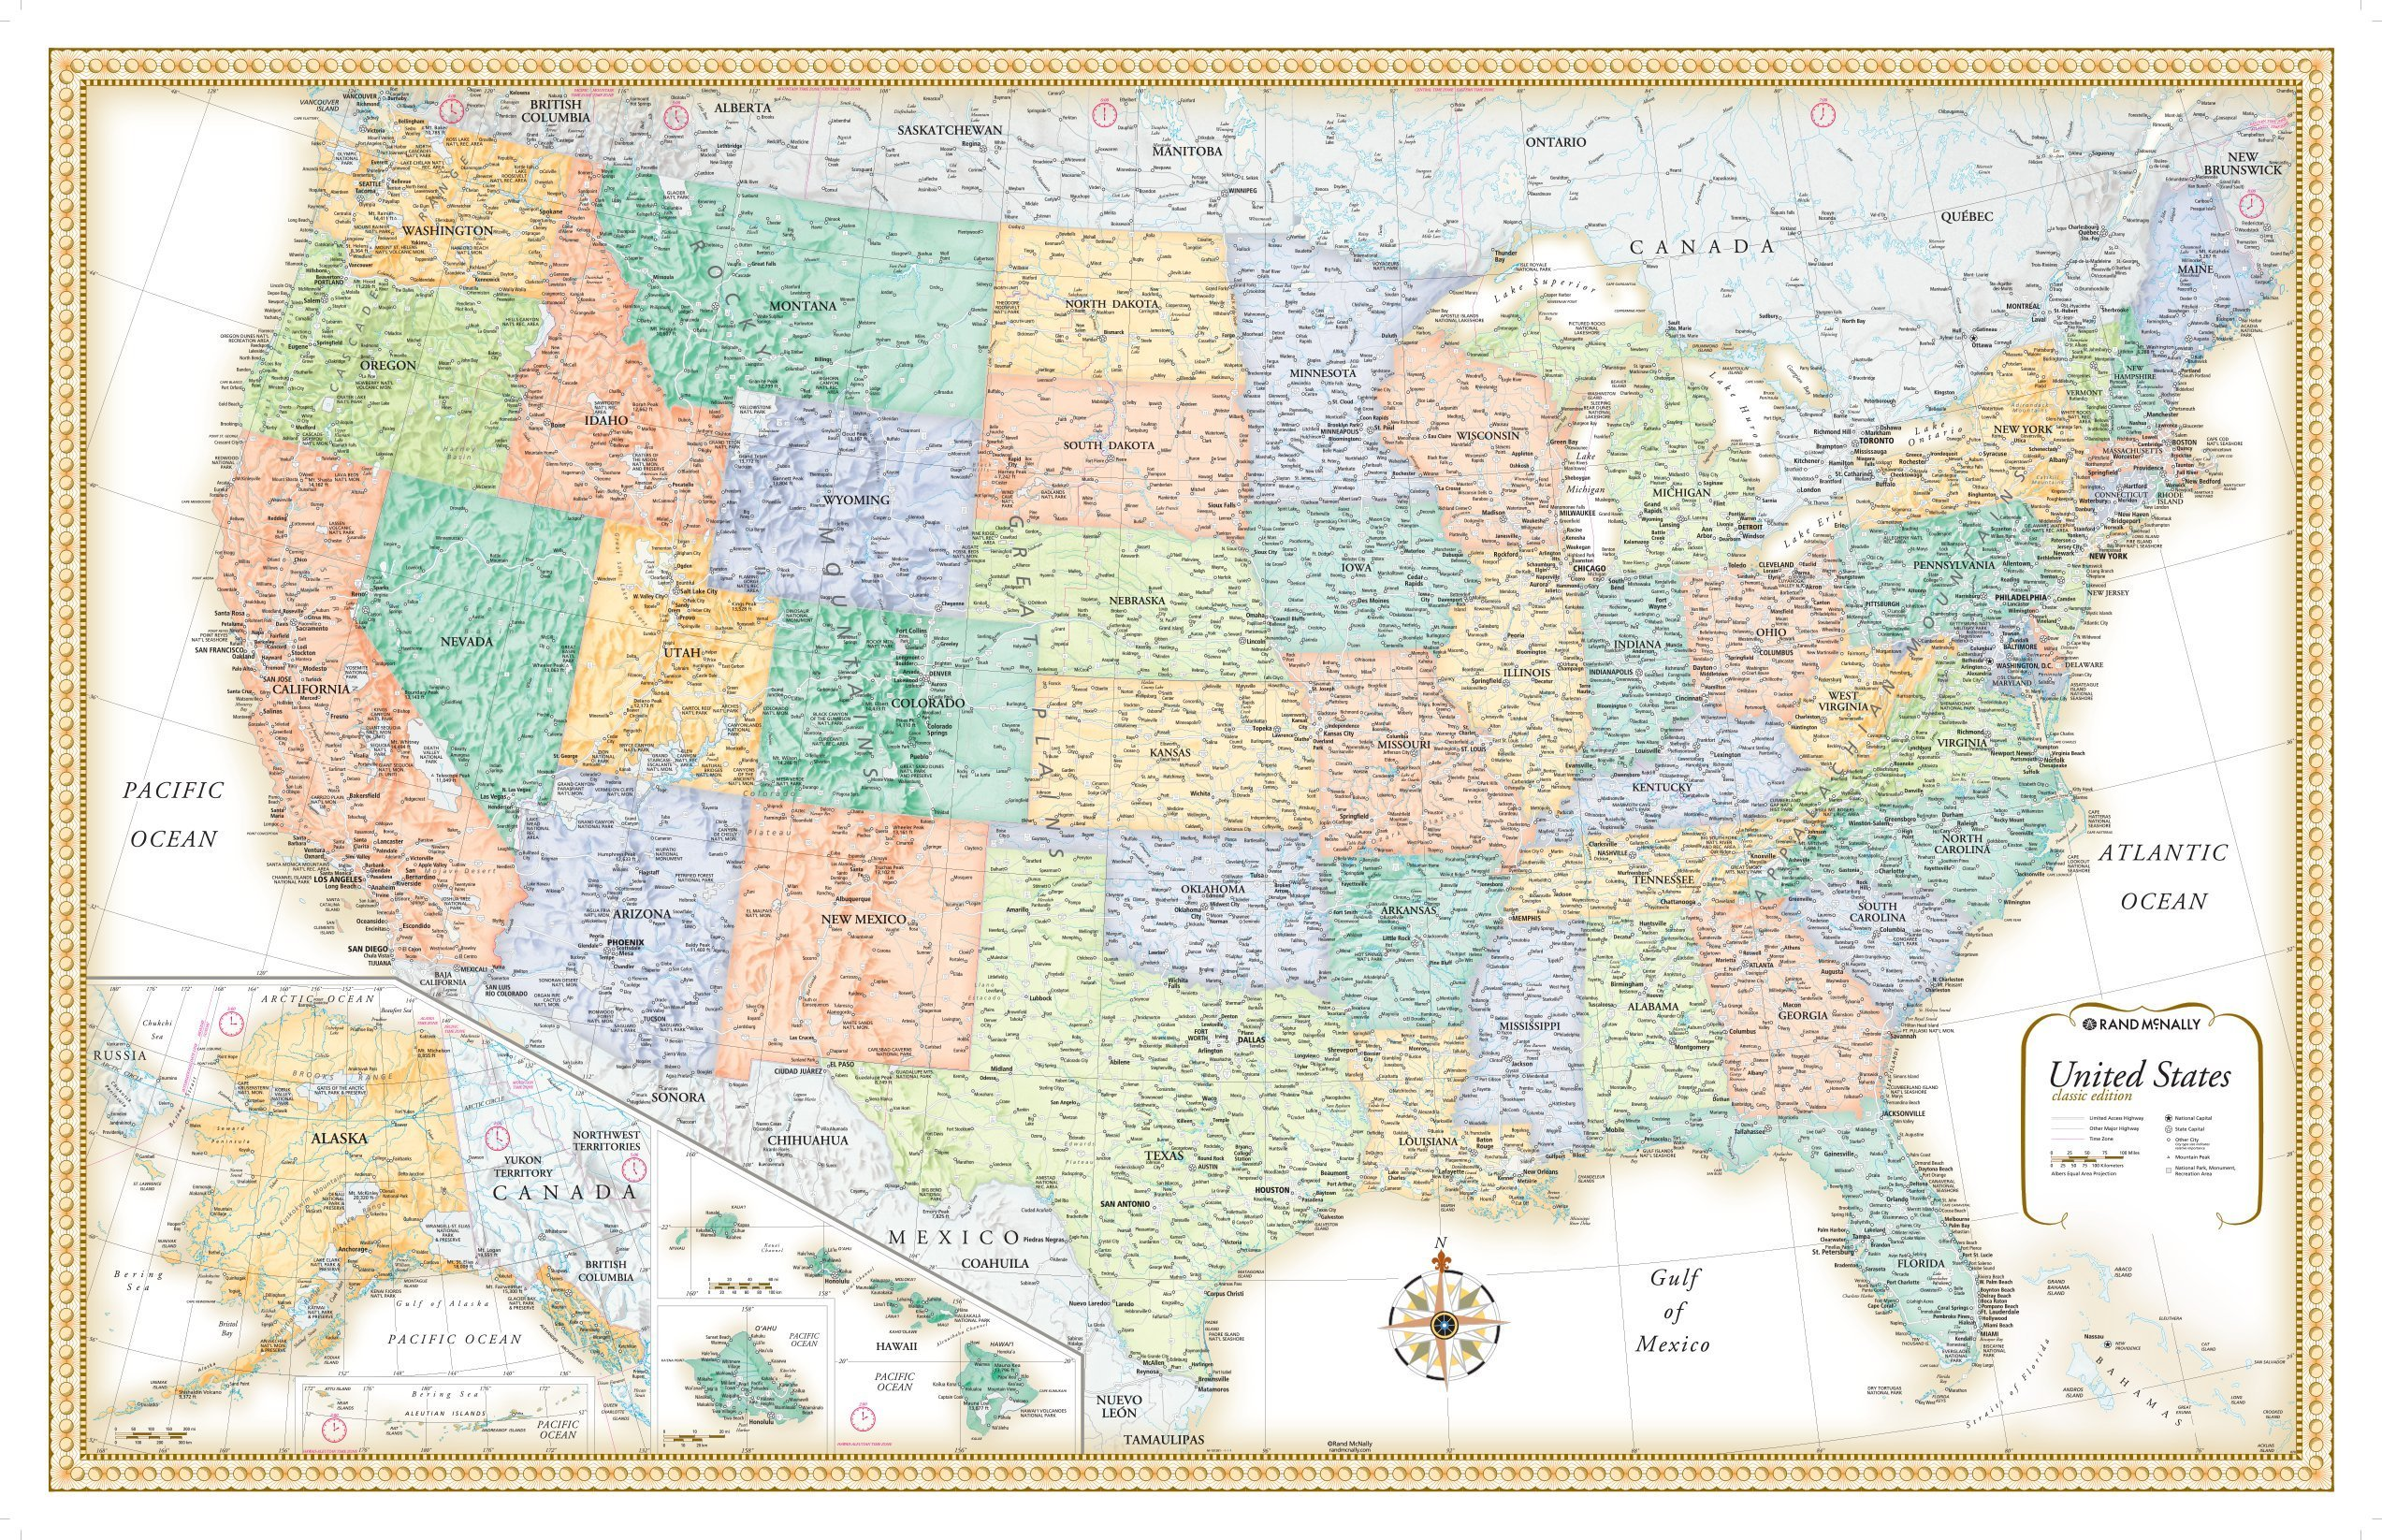 32x50 Rand McNally Classic United States USA Wall Map Framed Edition